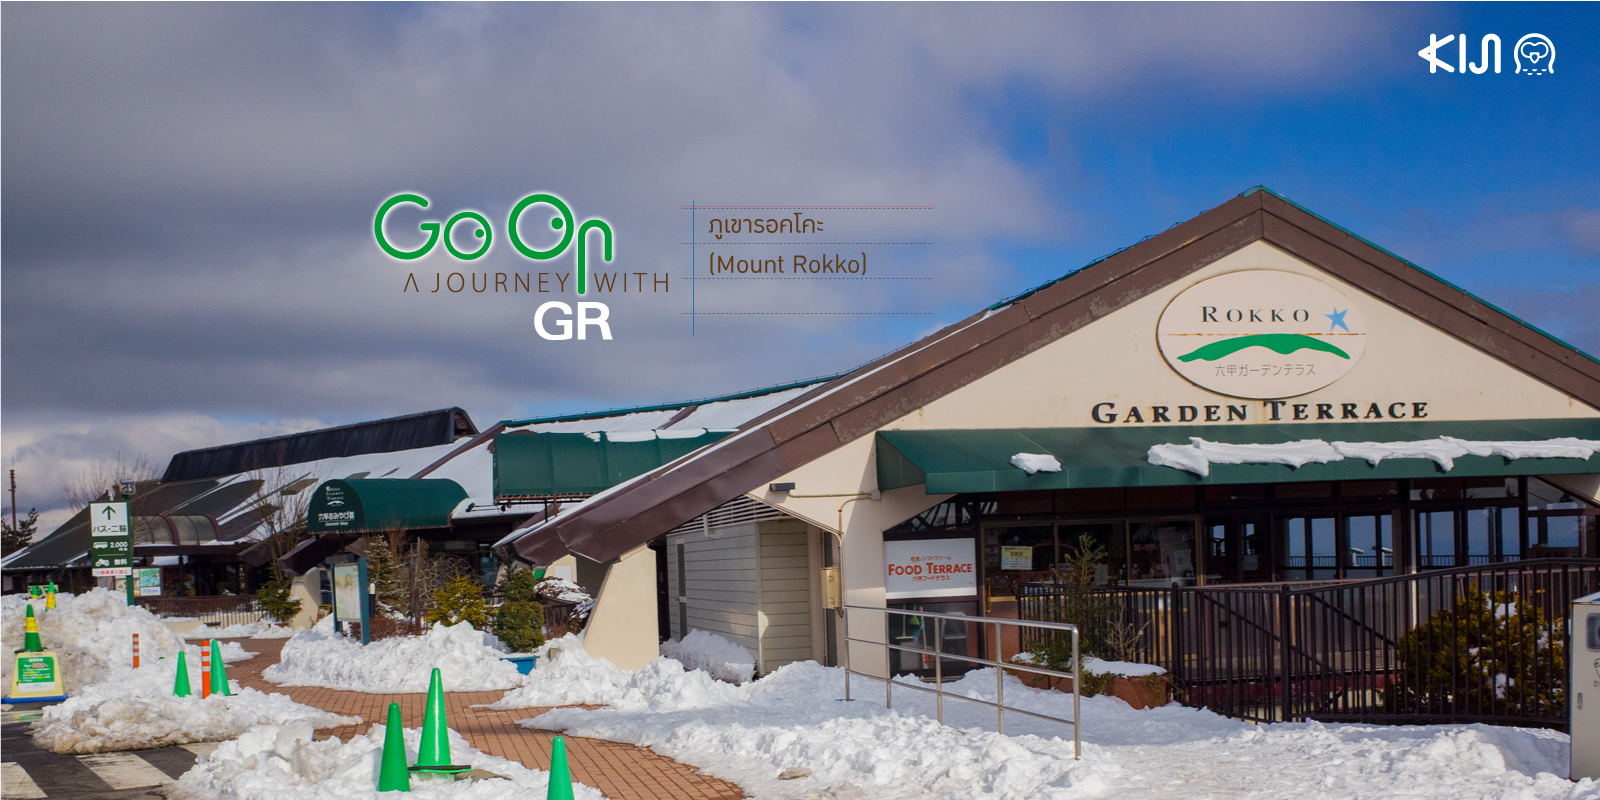 Go on a journey with GR เรื่อง Mount Rokko